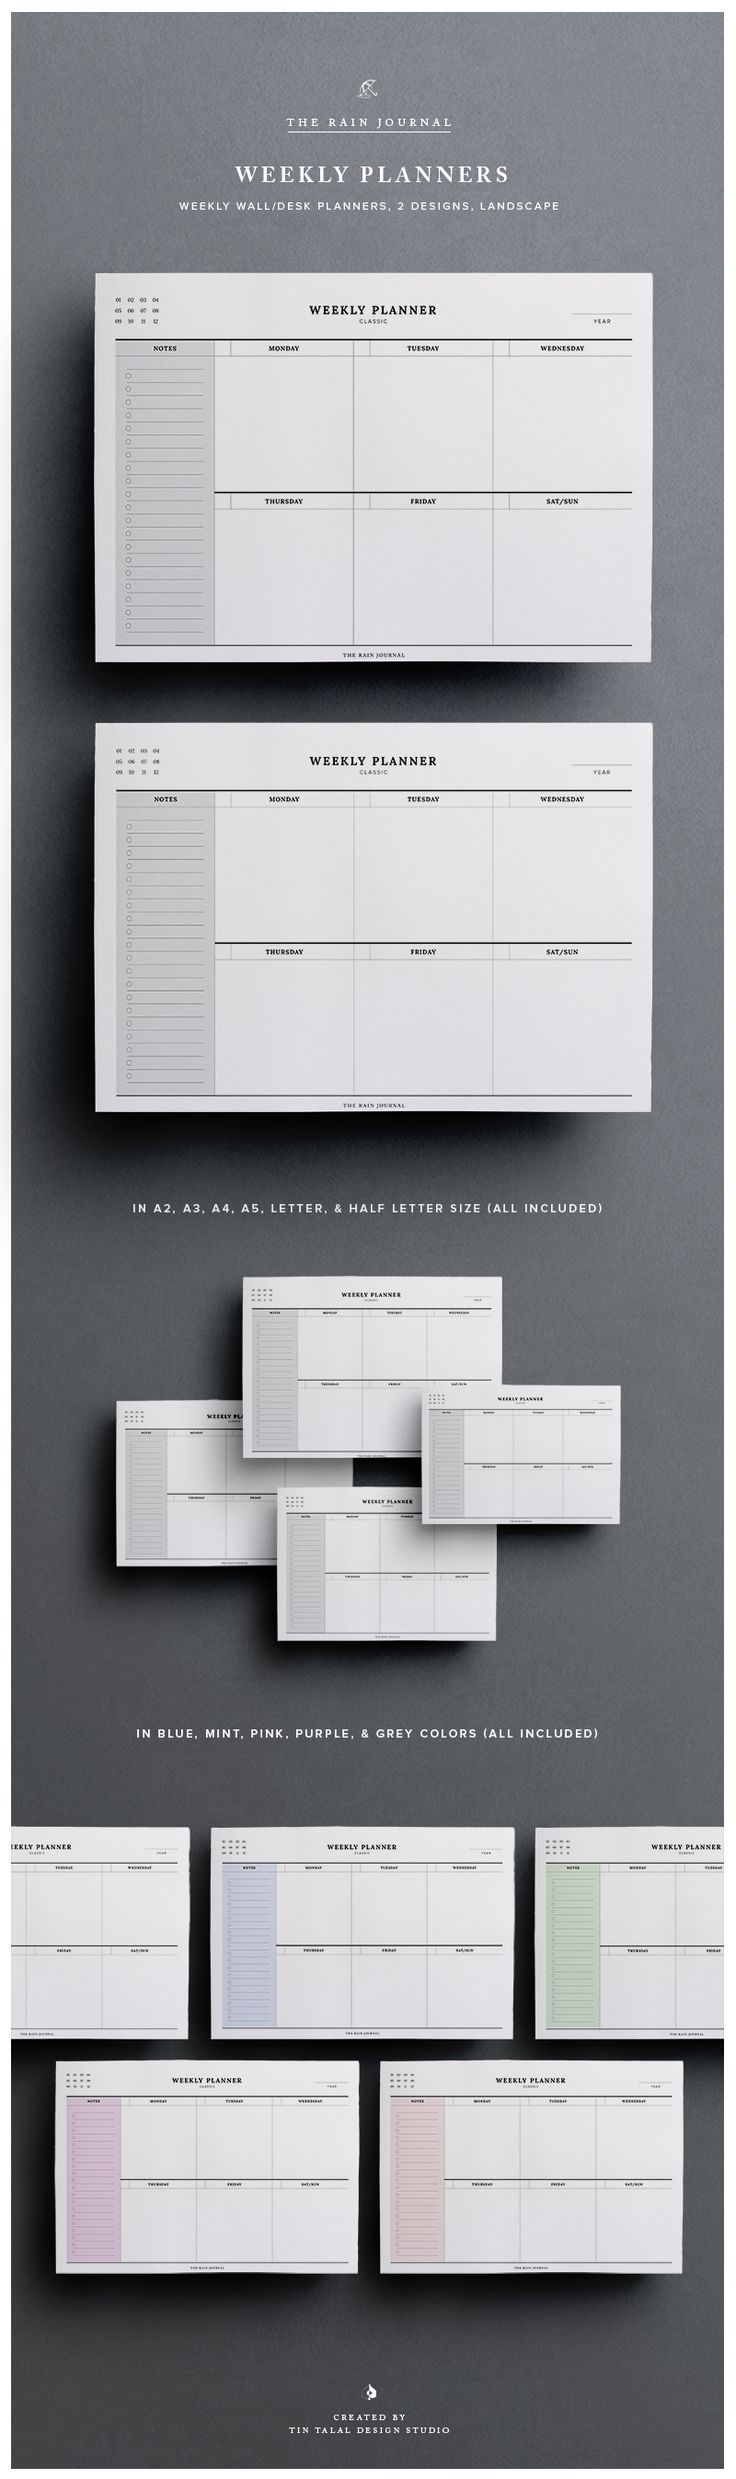 Weekly Planner Printable - This Weekly Planners can be inserted in your favorite planner and are also great on your wall! Undated Weekly Planner, Weekly Agenda, Weekly Organizer, Weekly Planner Pages, Weekly Planner Insert, A5 Weekly, Wall Planner, Desk Planner